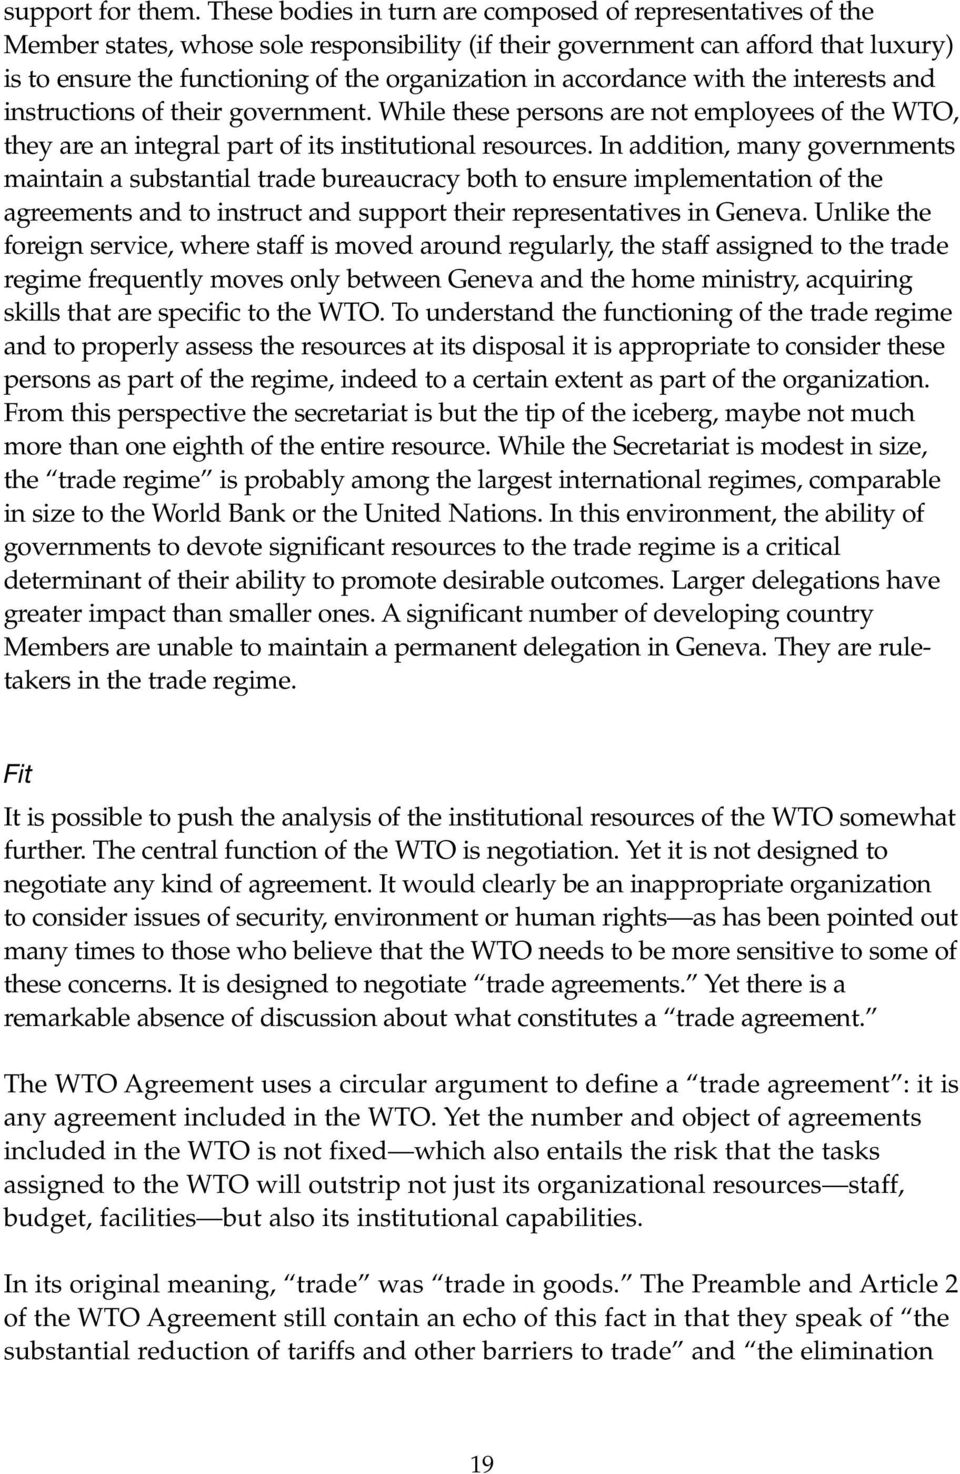 accordance with the interests and instructions of their government. While these persons are not employees of the WTO, they are an integral part of its institutional resources.